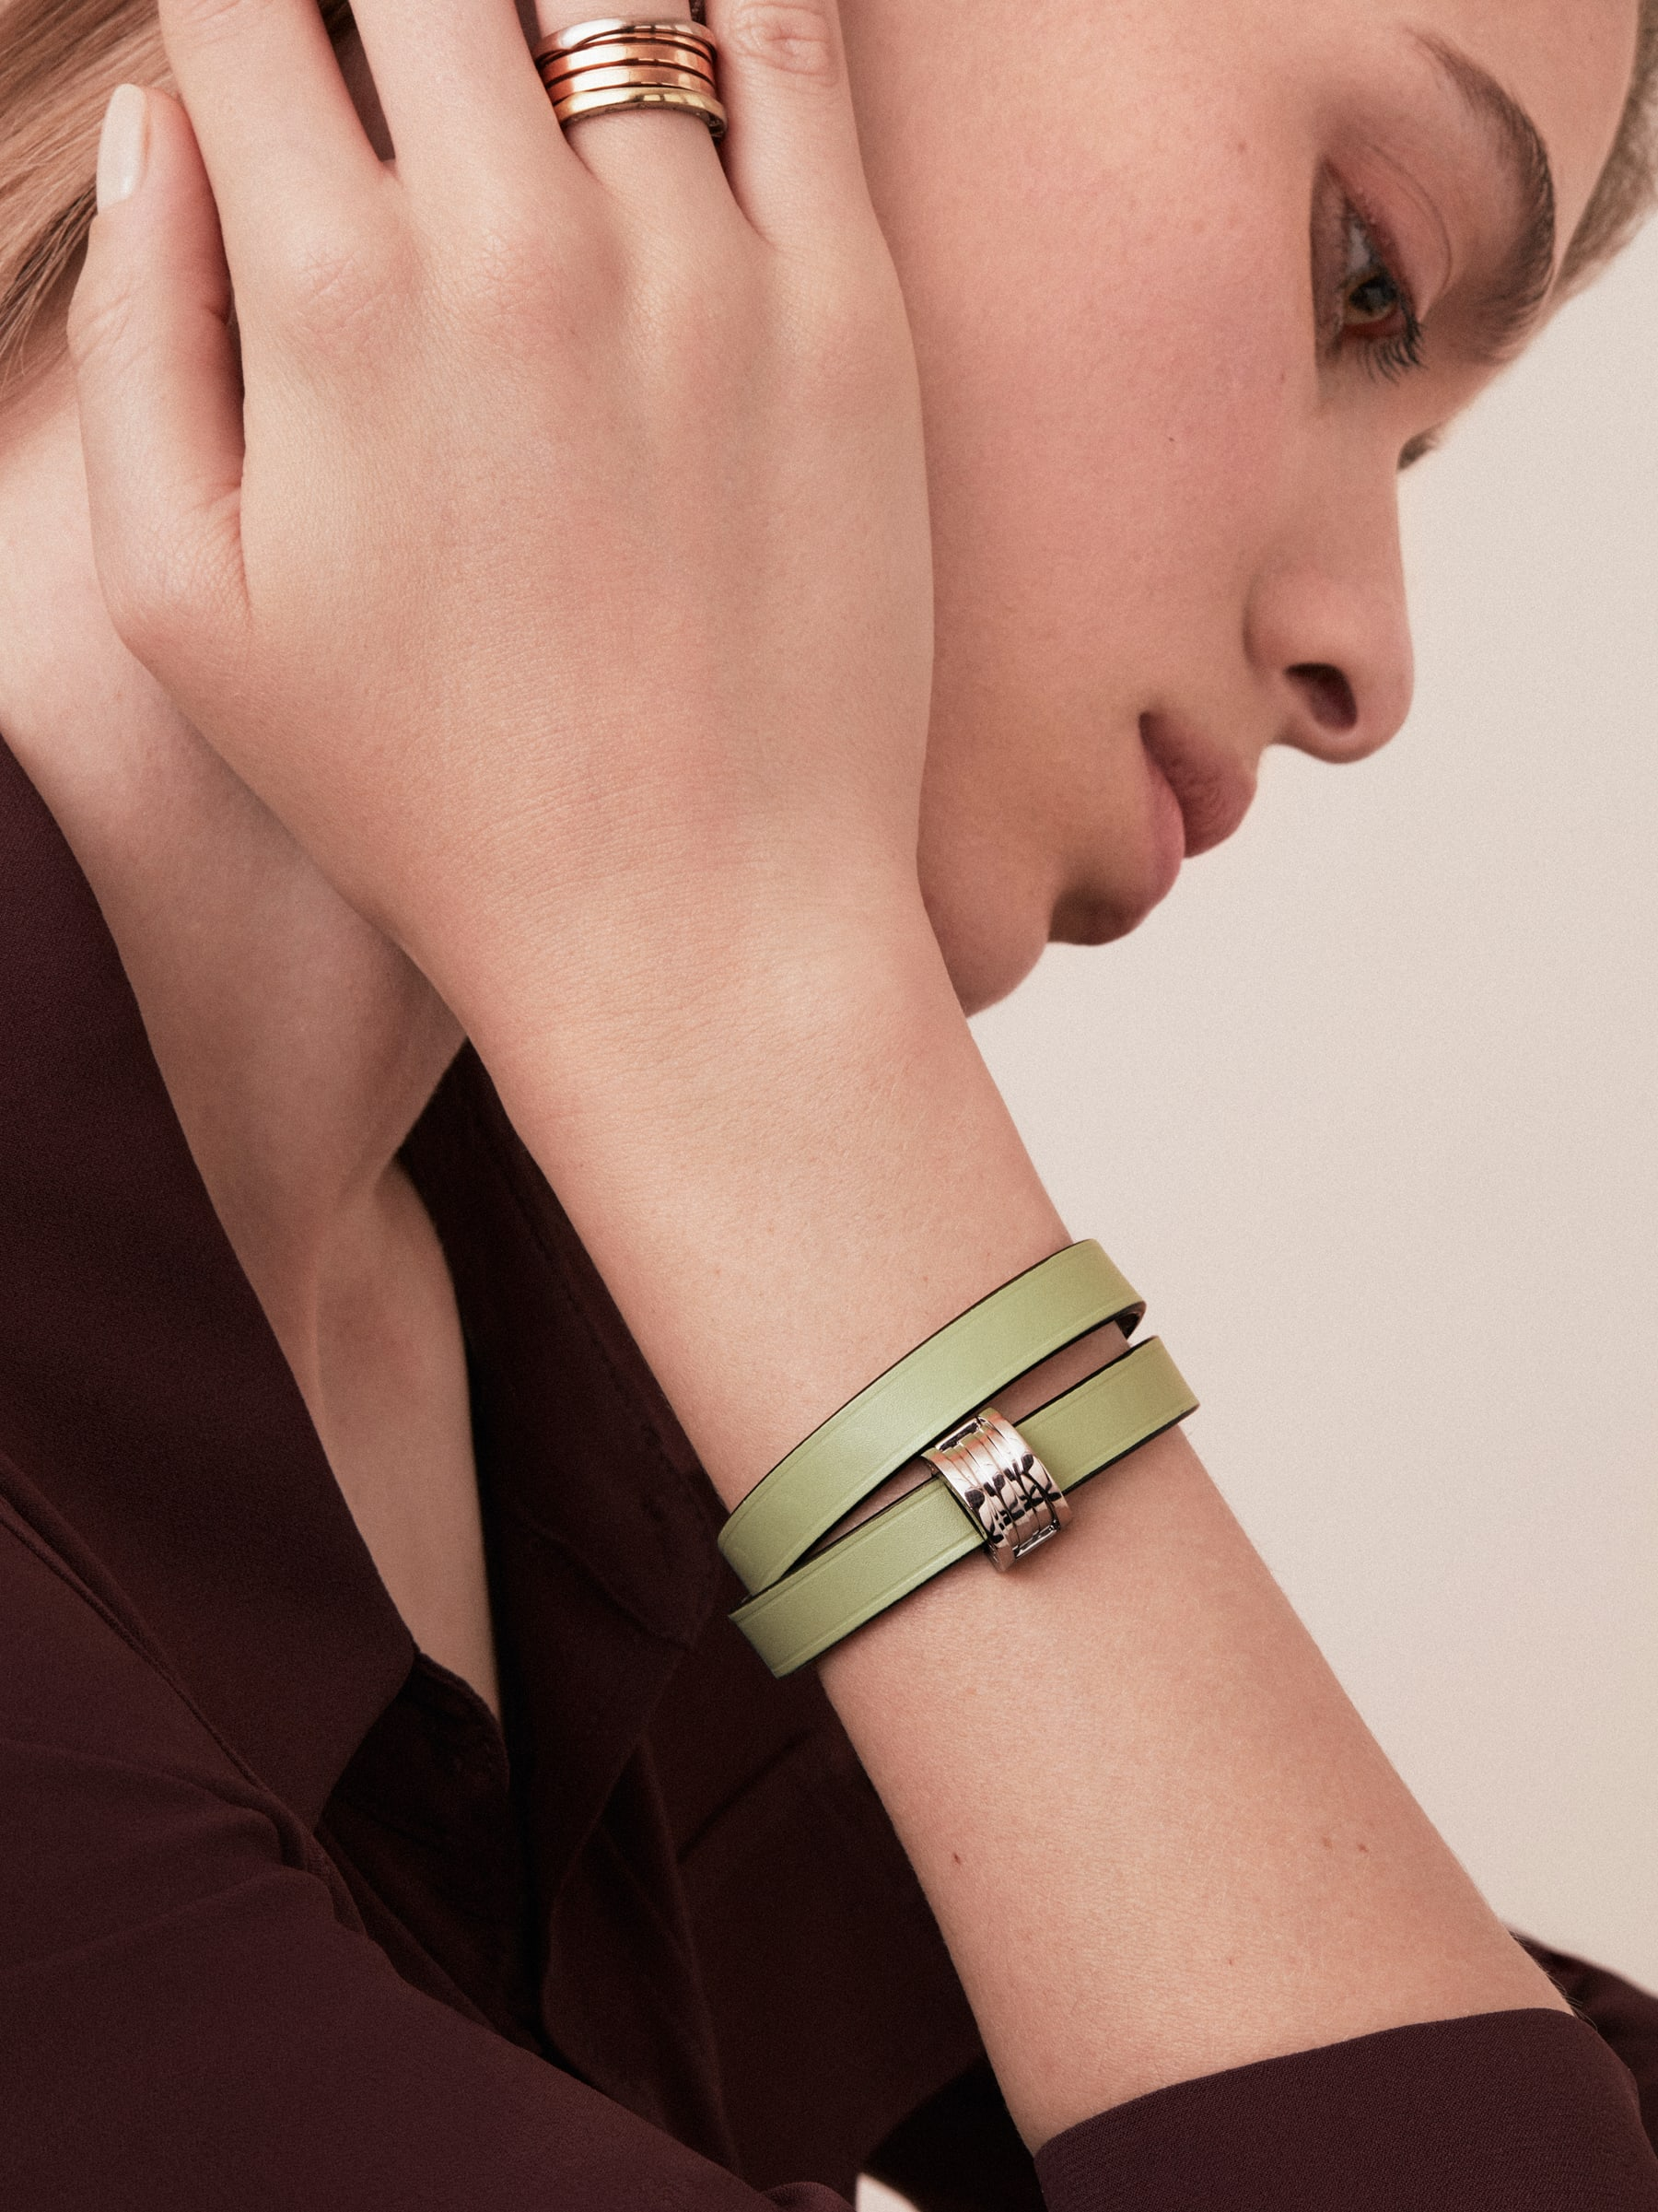 """Bvlgari Bvlgari"" double-coiled bracelet in mint calf leather, with B.Zero1 snap closure in light gold plated brass. BZERO1-CL-M image 2"